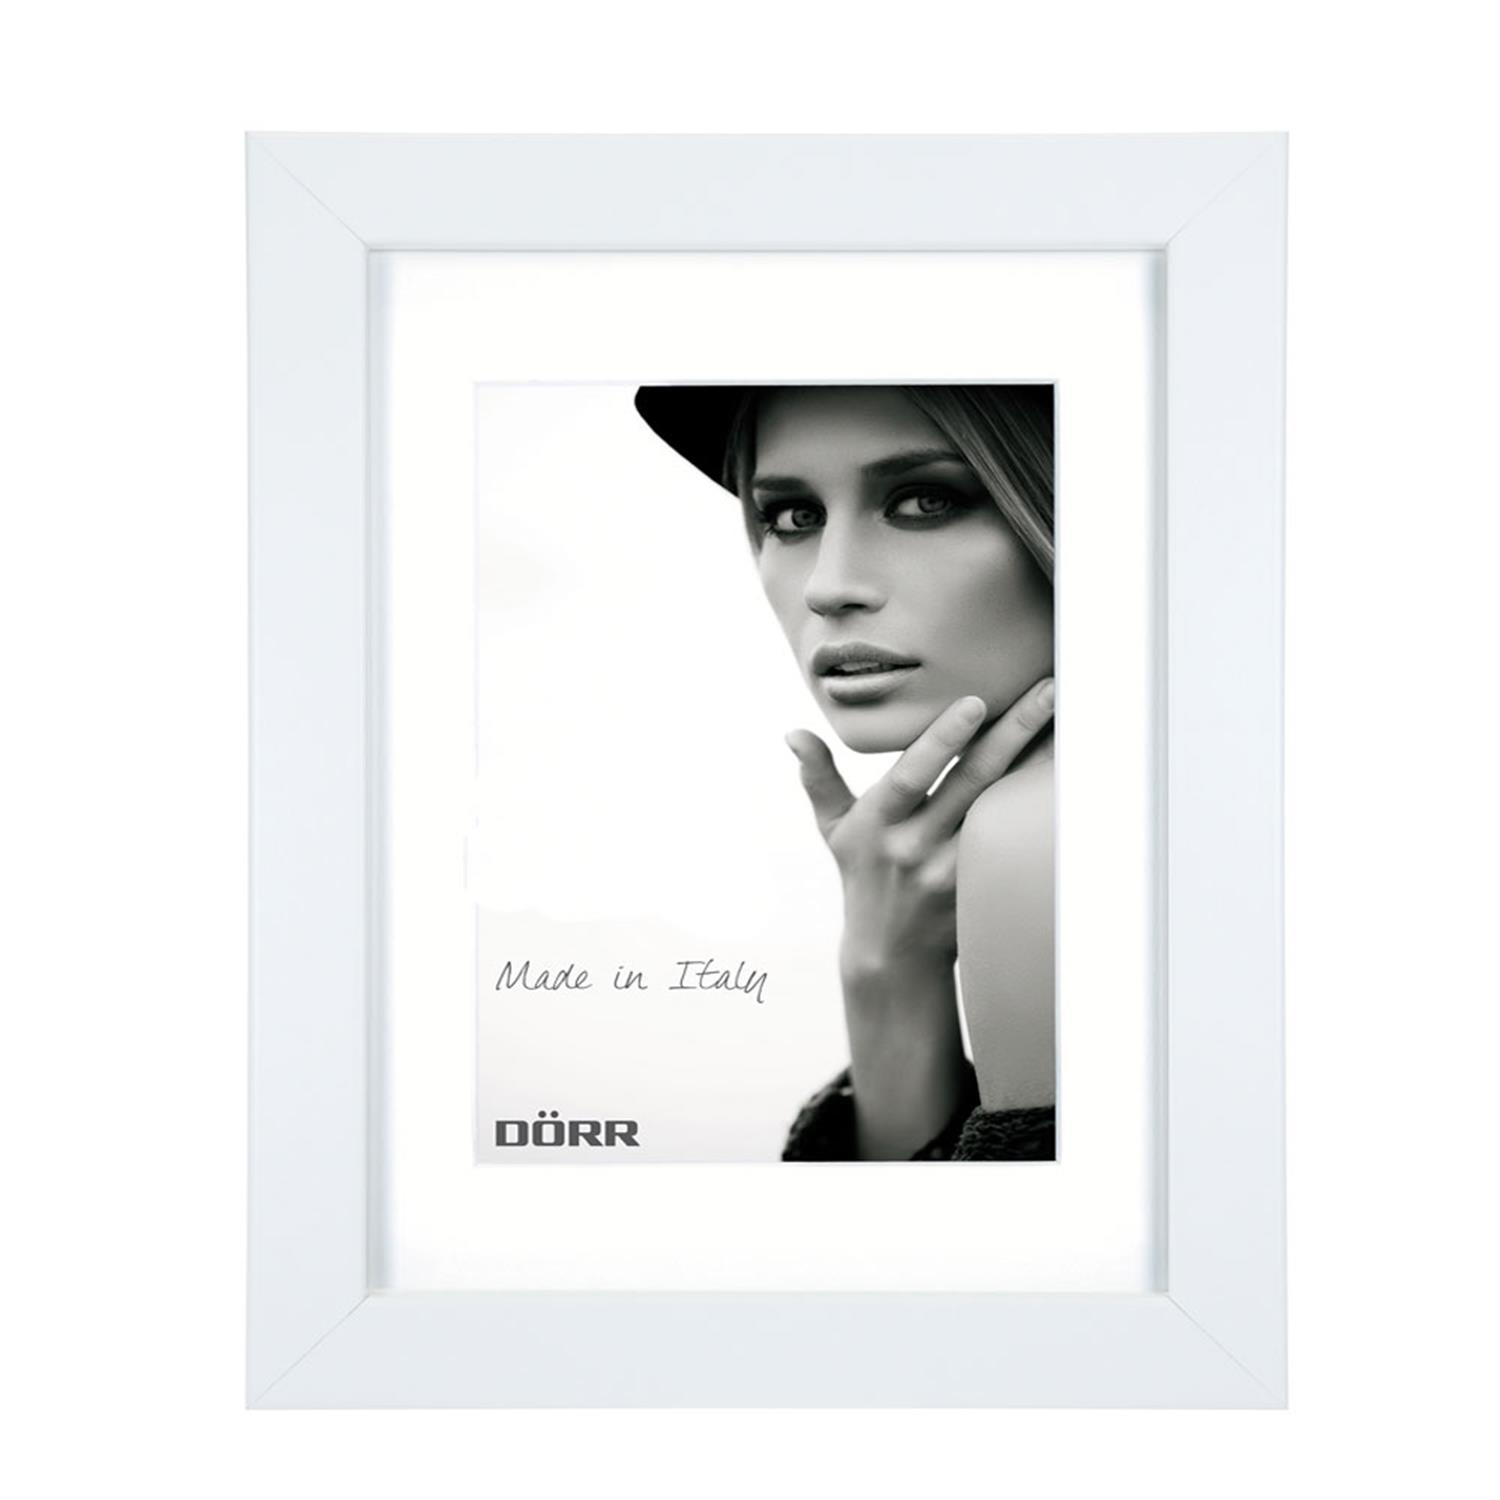 Dorr Bloc White 9x7 inch Wood Photo Frame with 7x5 inch insert